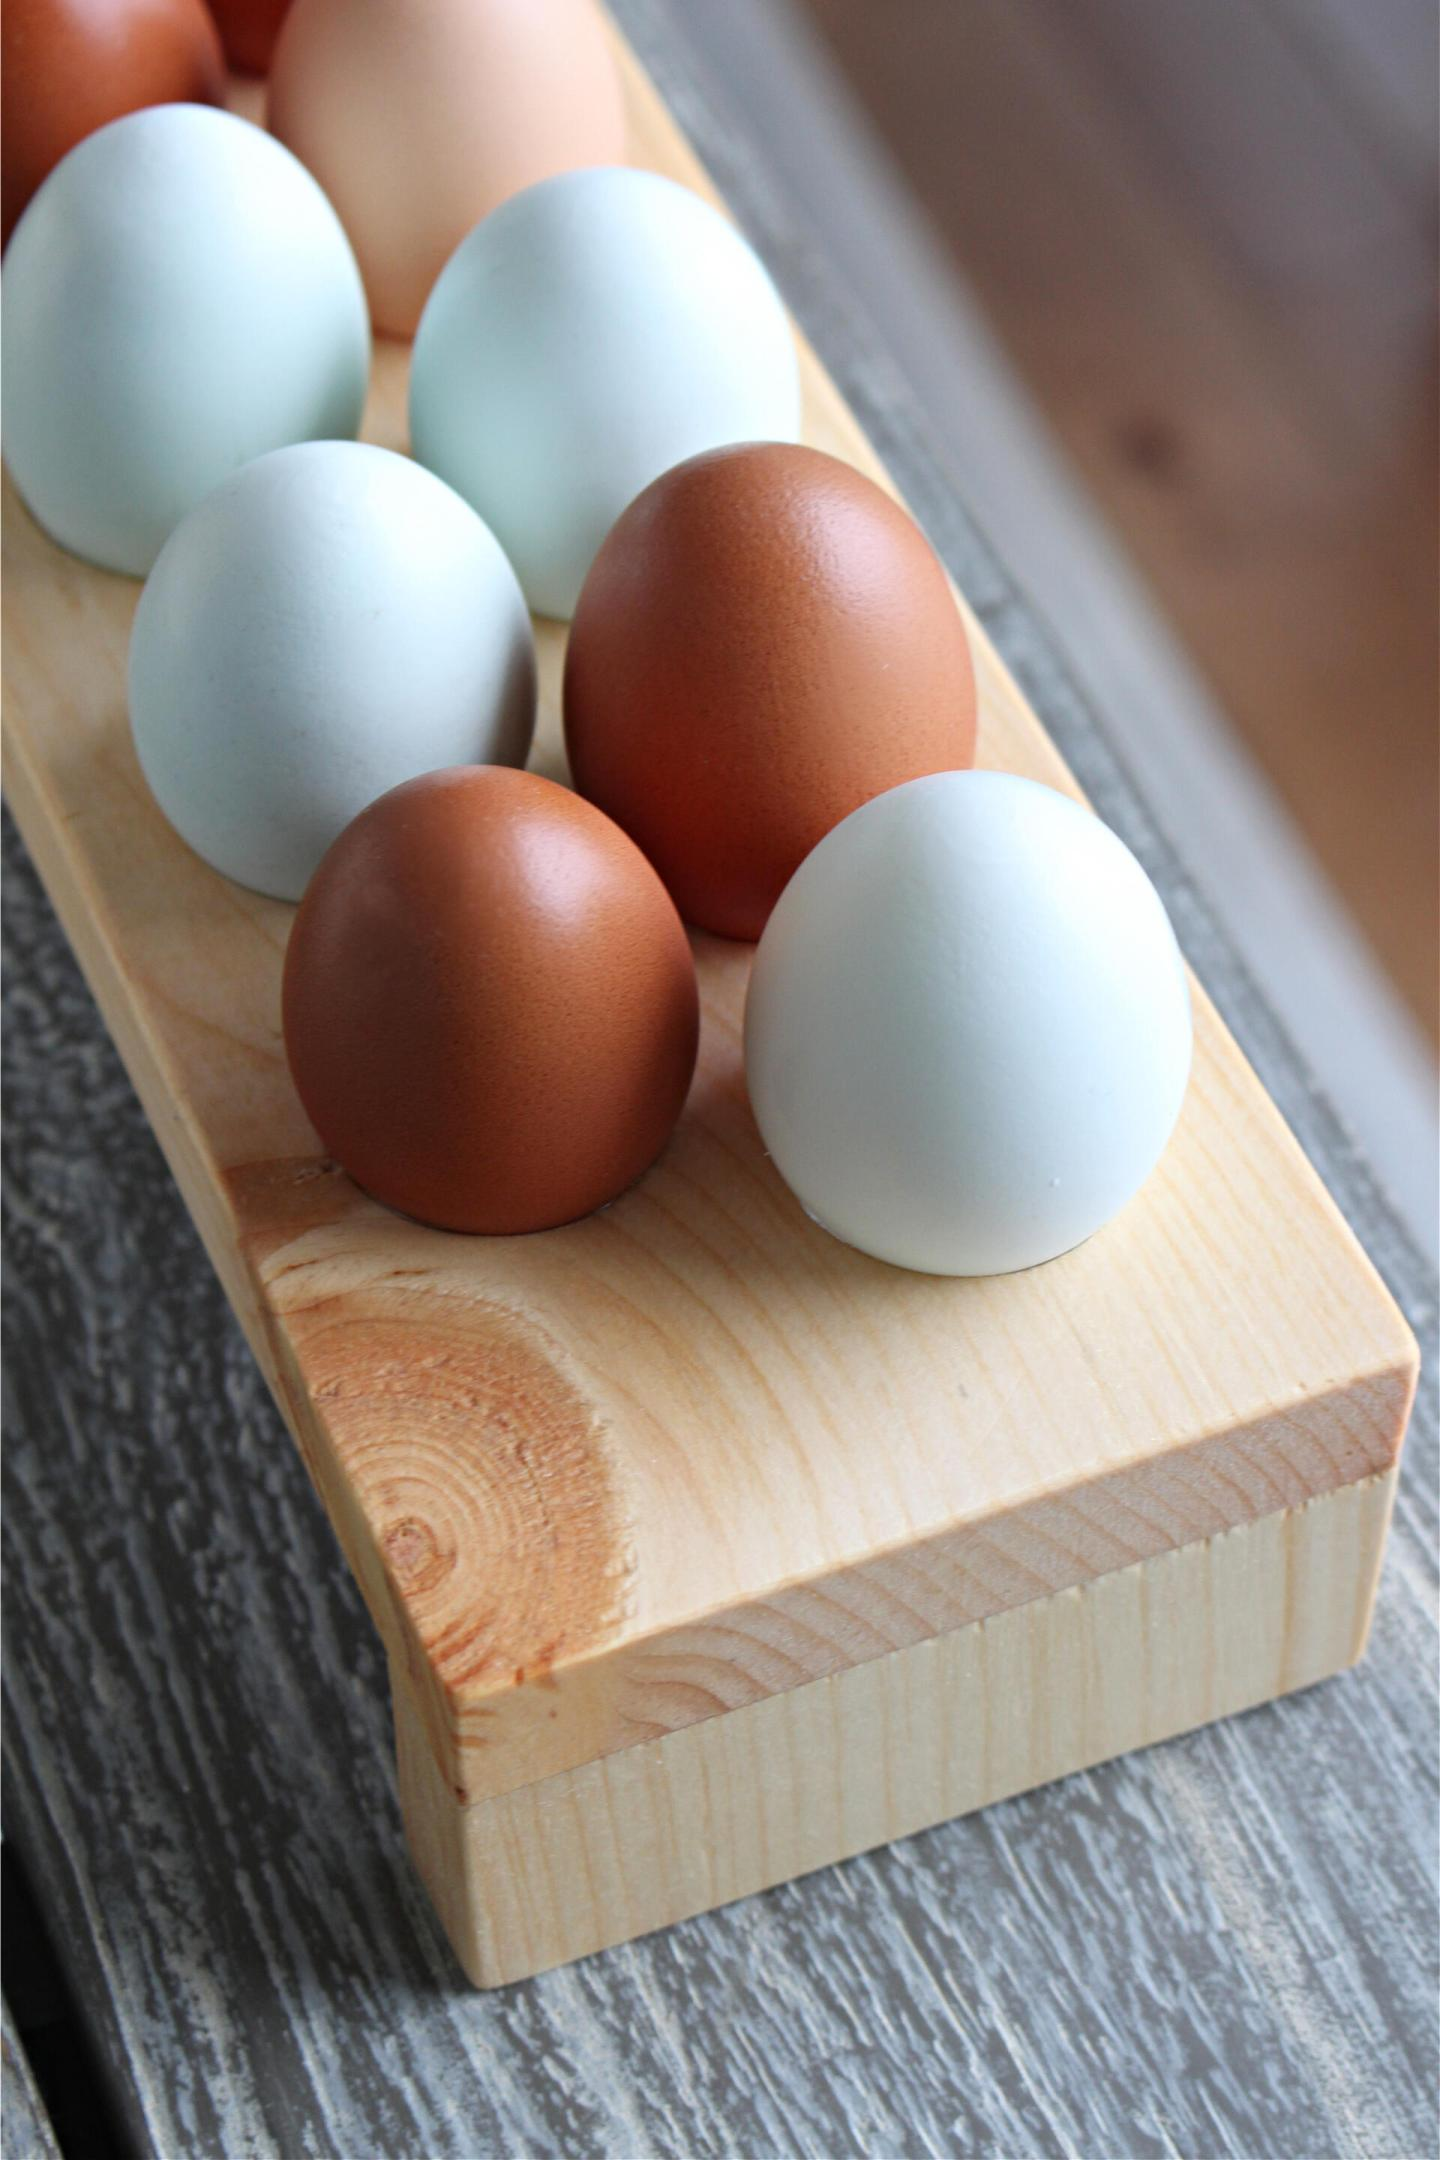 How to make an egg tray